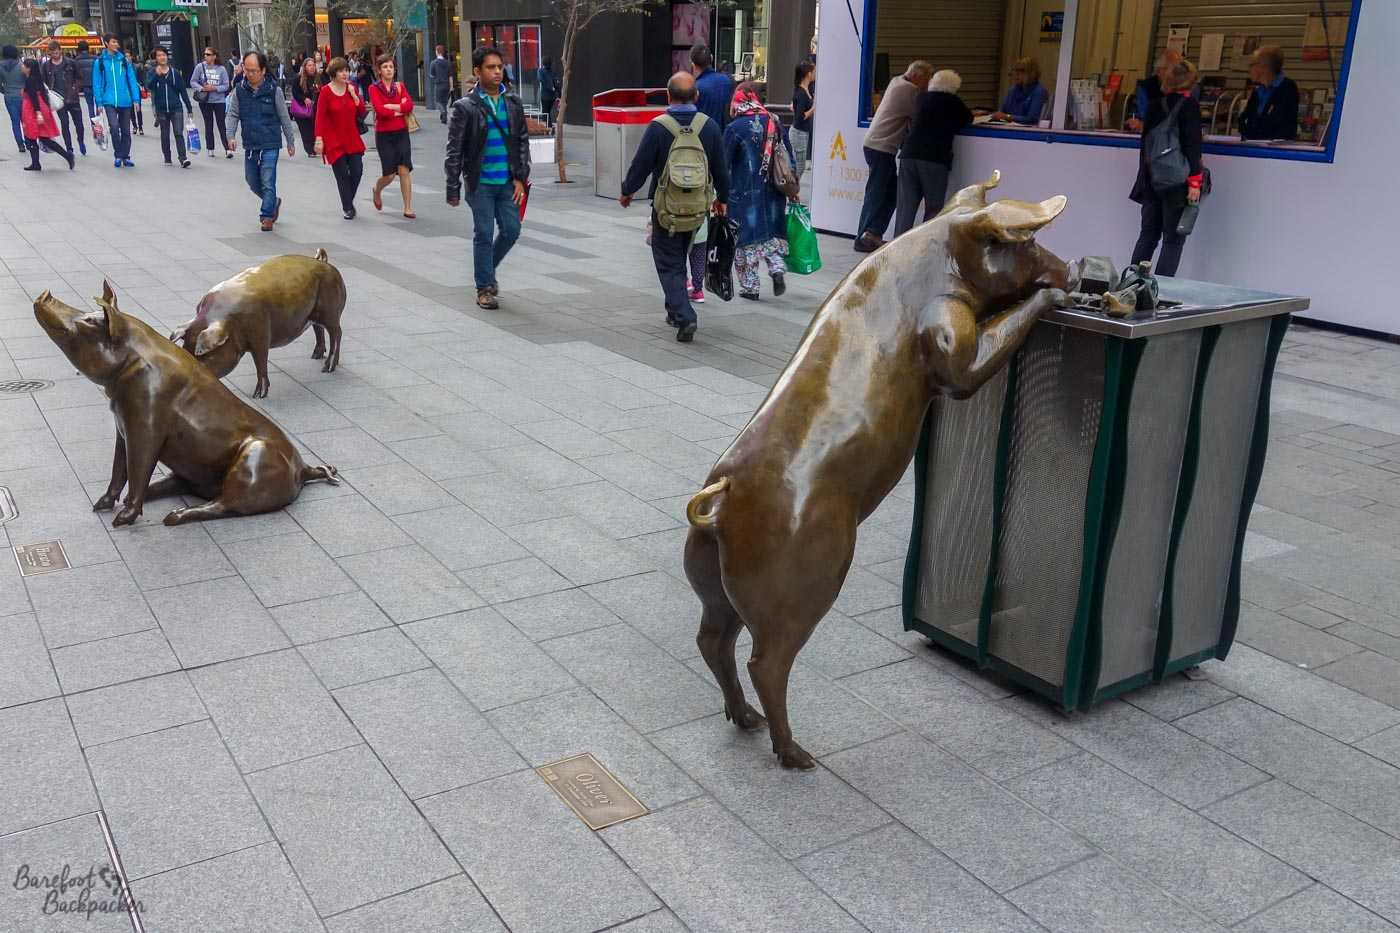 The pigs of the 'A Day Out' sculpture, well three of them at least. One is sitting down, one seems to be snuffling at the ground, while a third is standing with his front trotters peering into one of the rubbish bins.